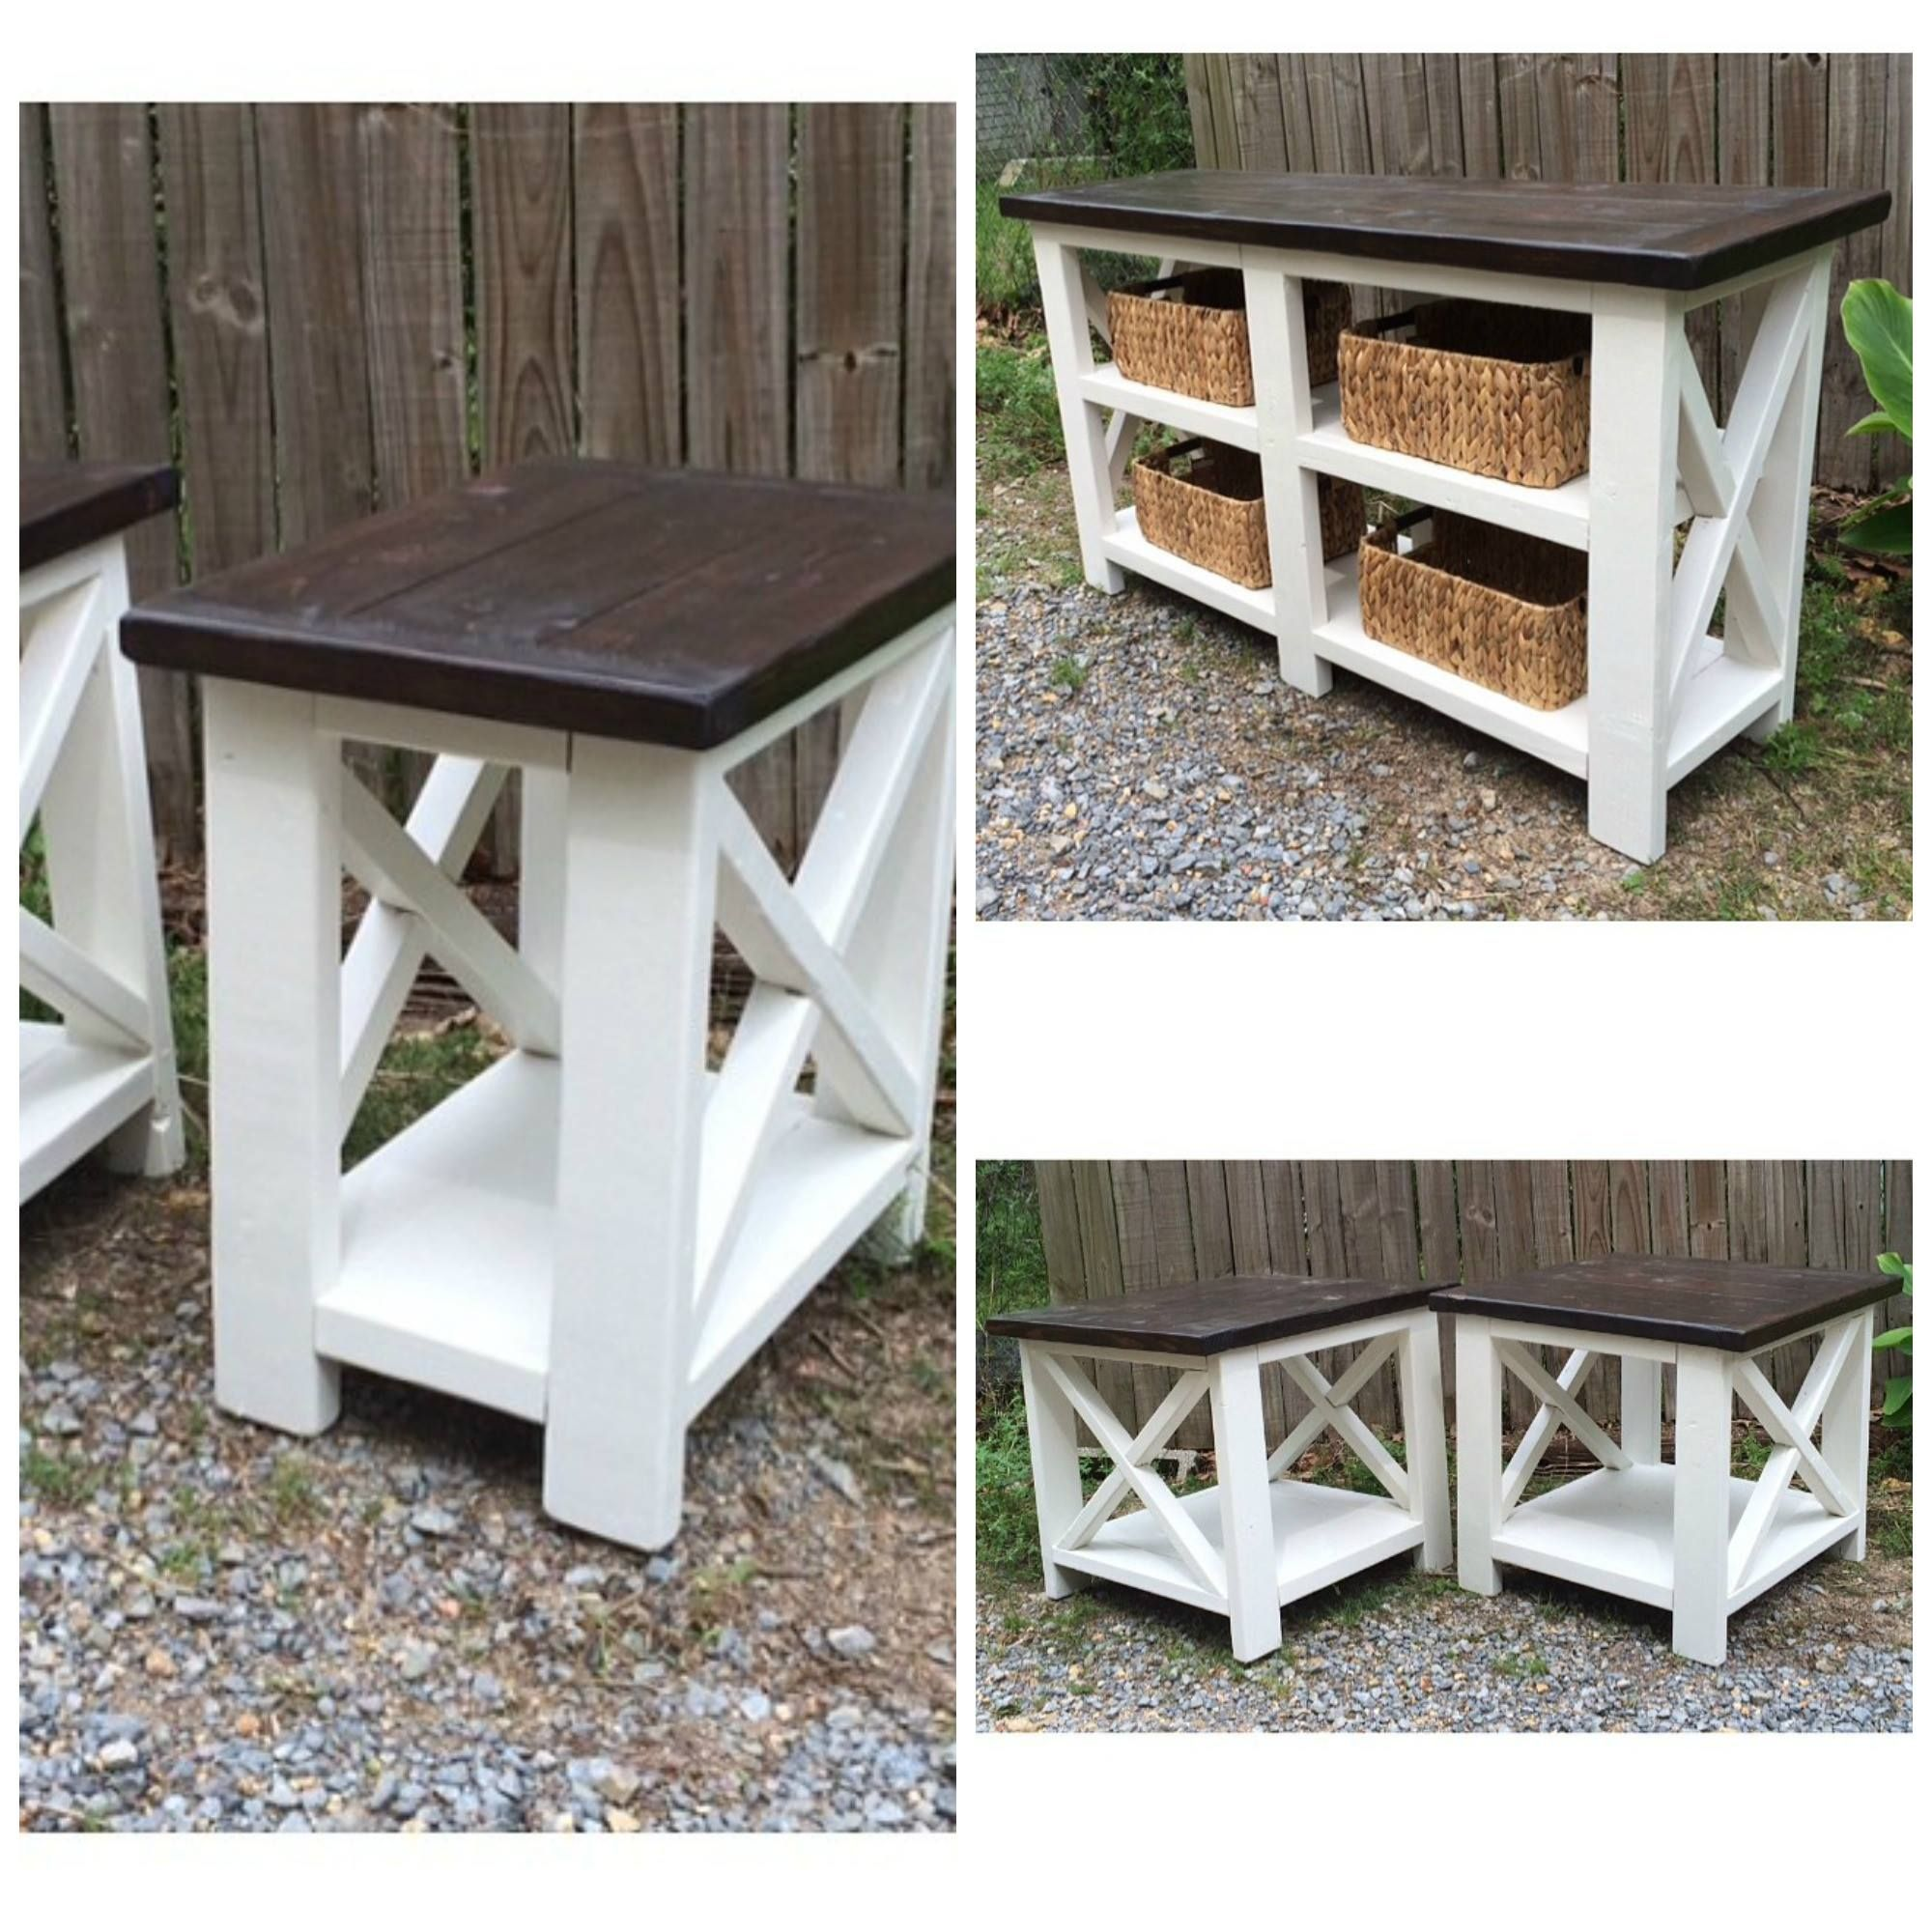 Ana white lets build something pallets and woodworking ana white lets build something geotapseo Choice Image